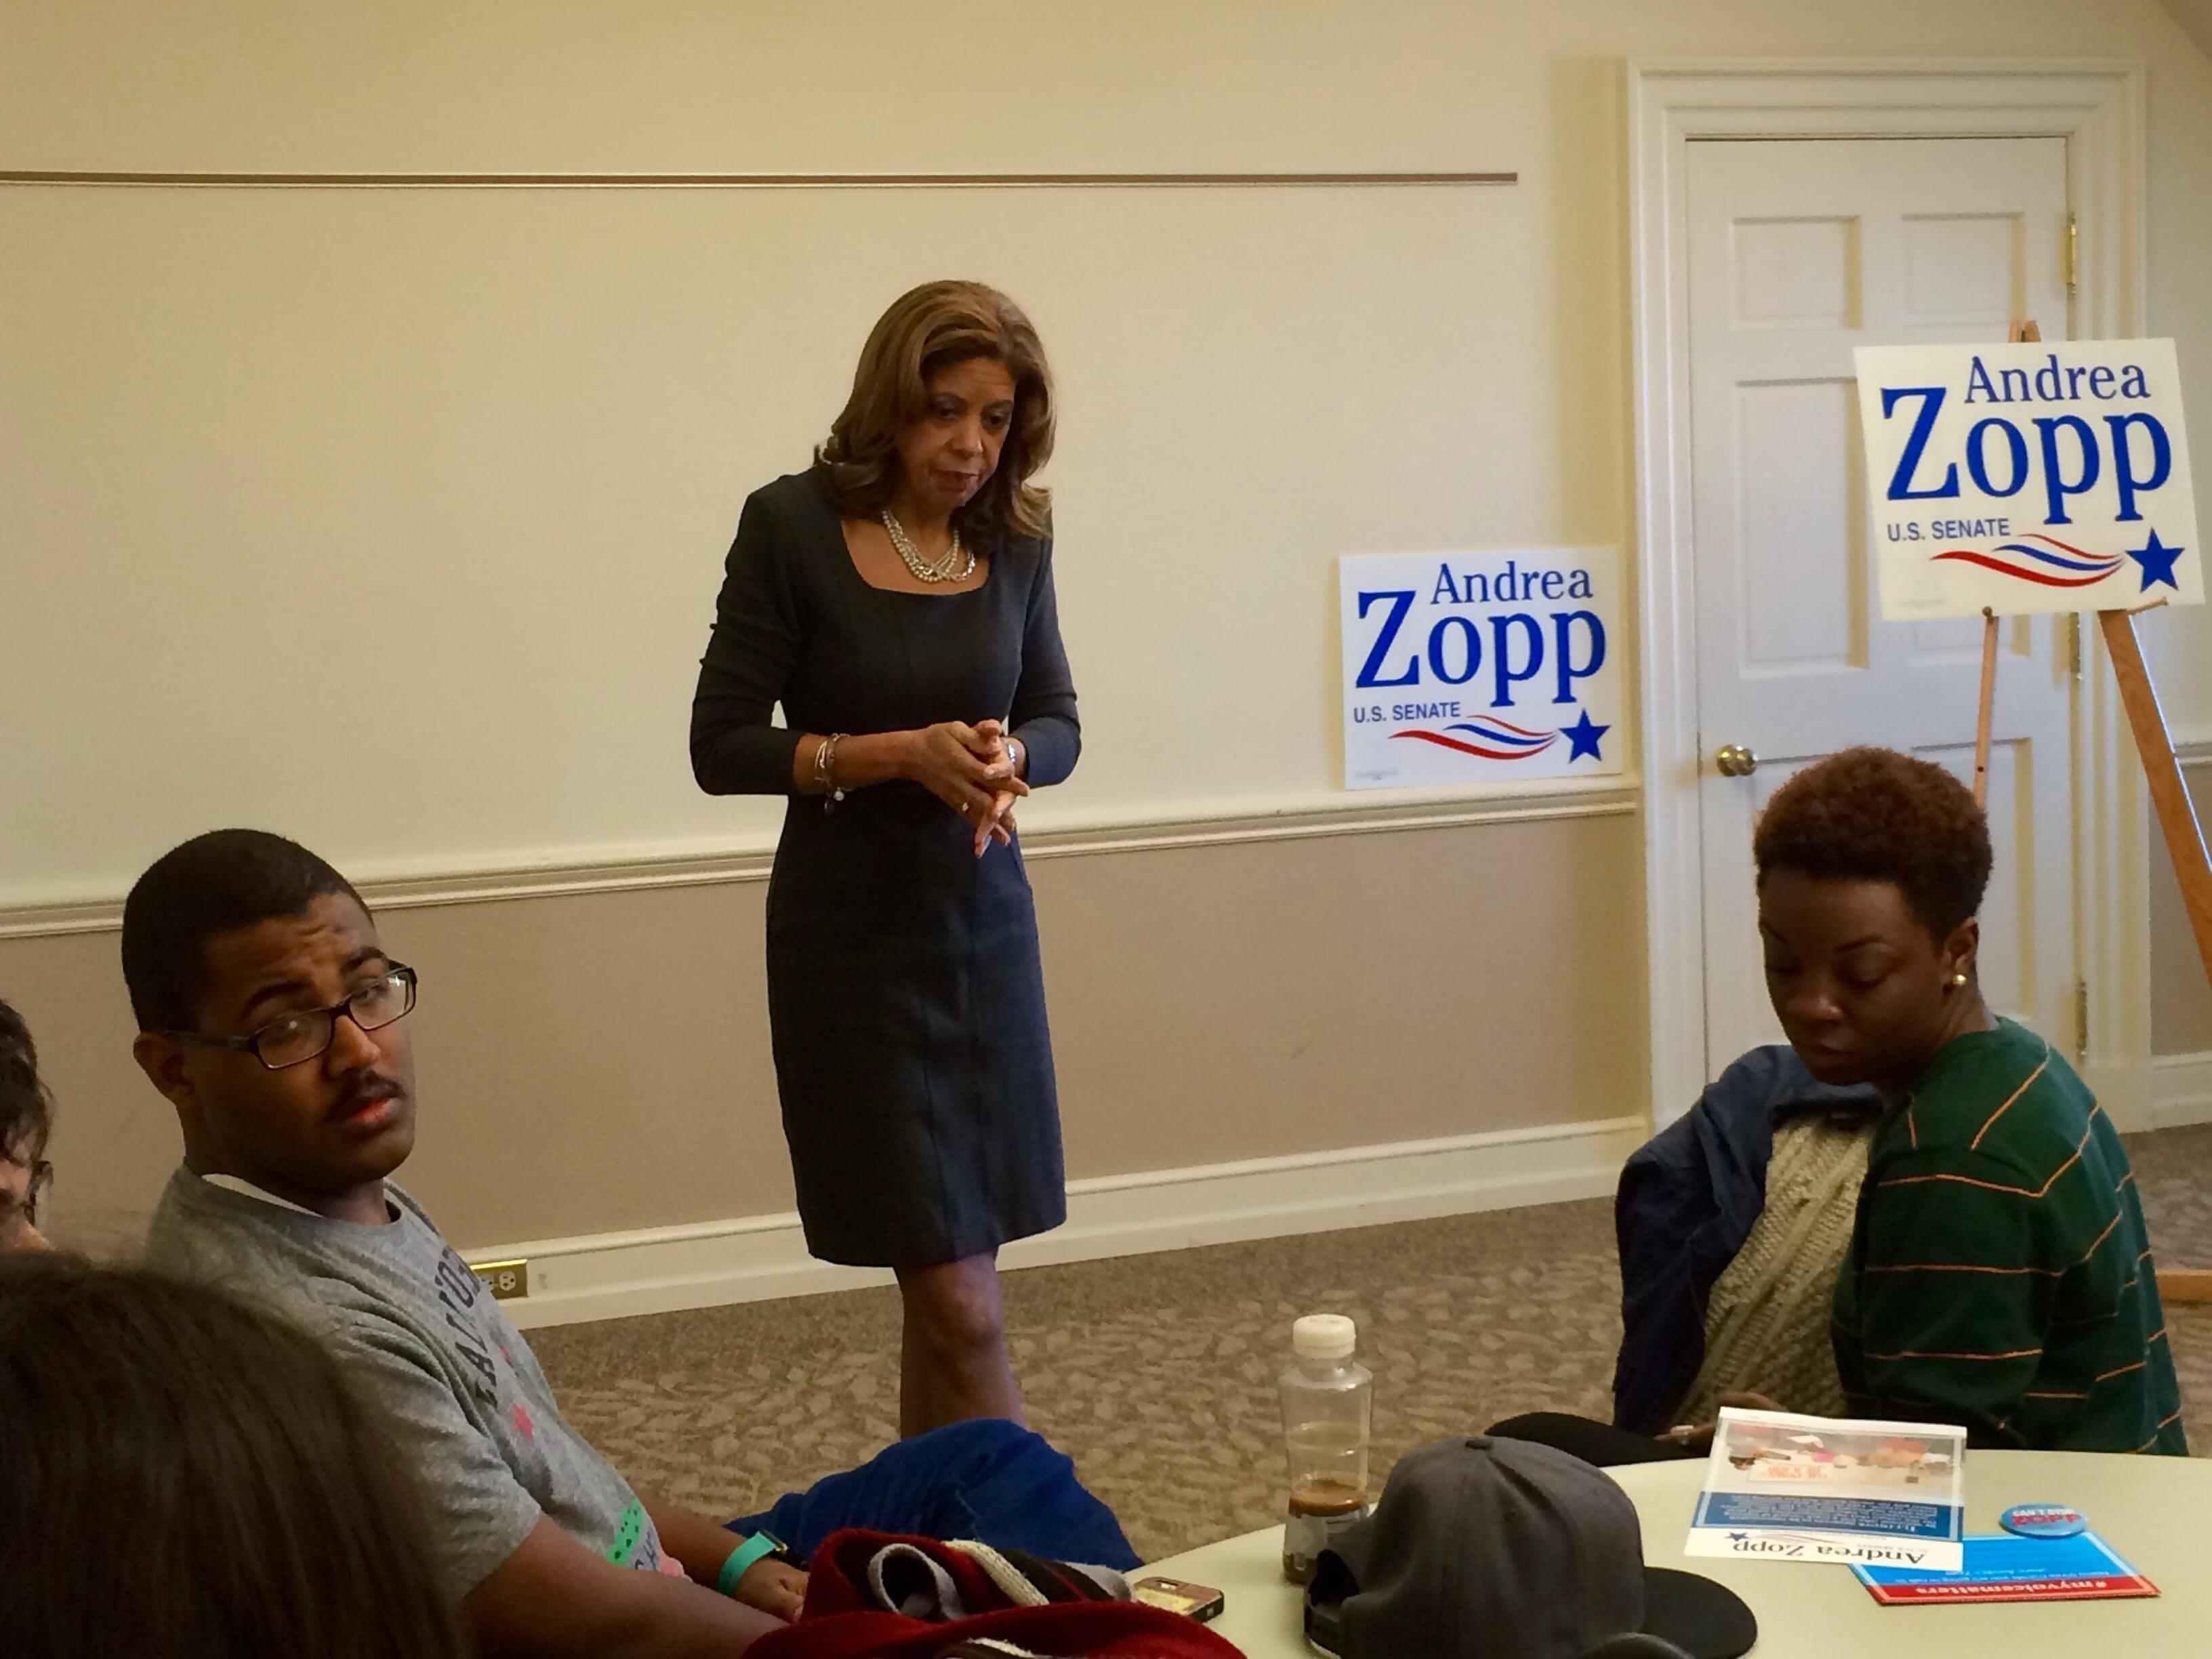 Andrea Zopp, a Democrat vying for U.S. Senate, speaks with students at the University of Illinois Illini Union on Tuesday.